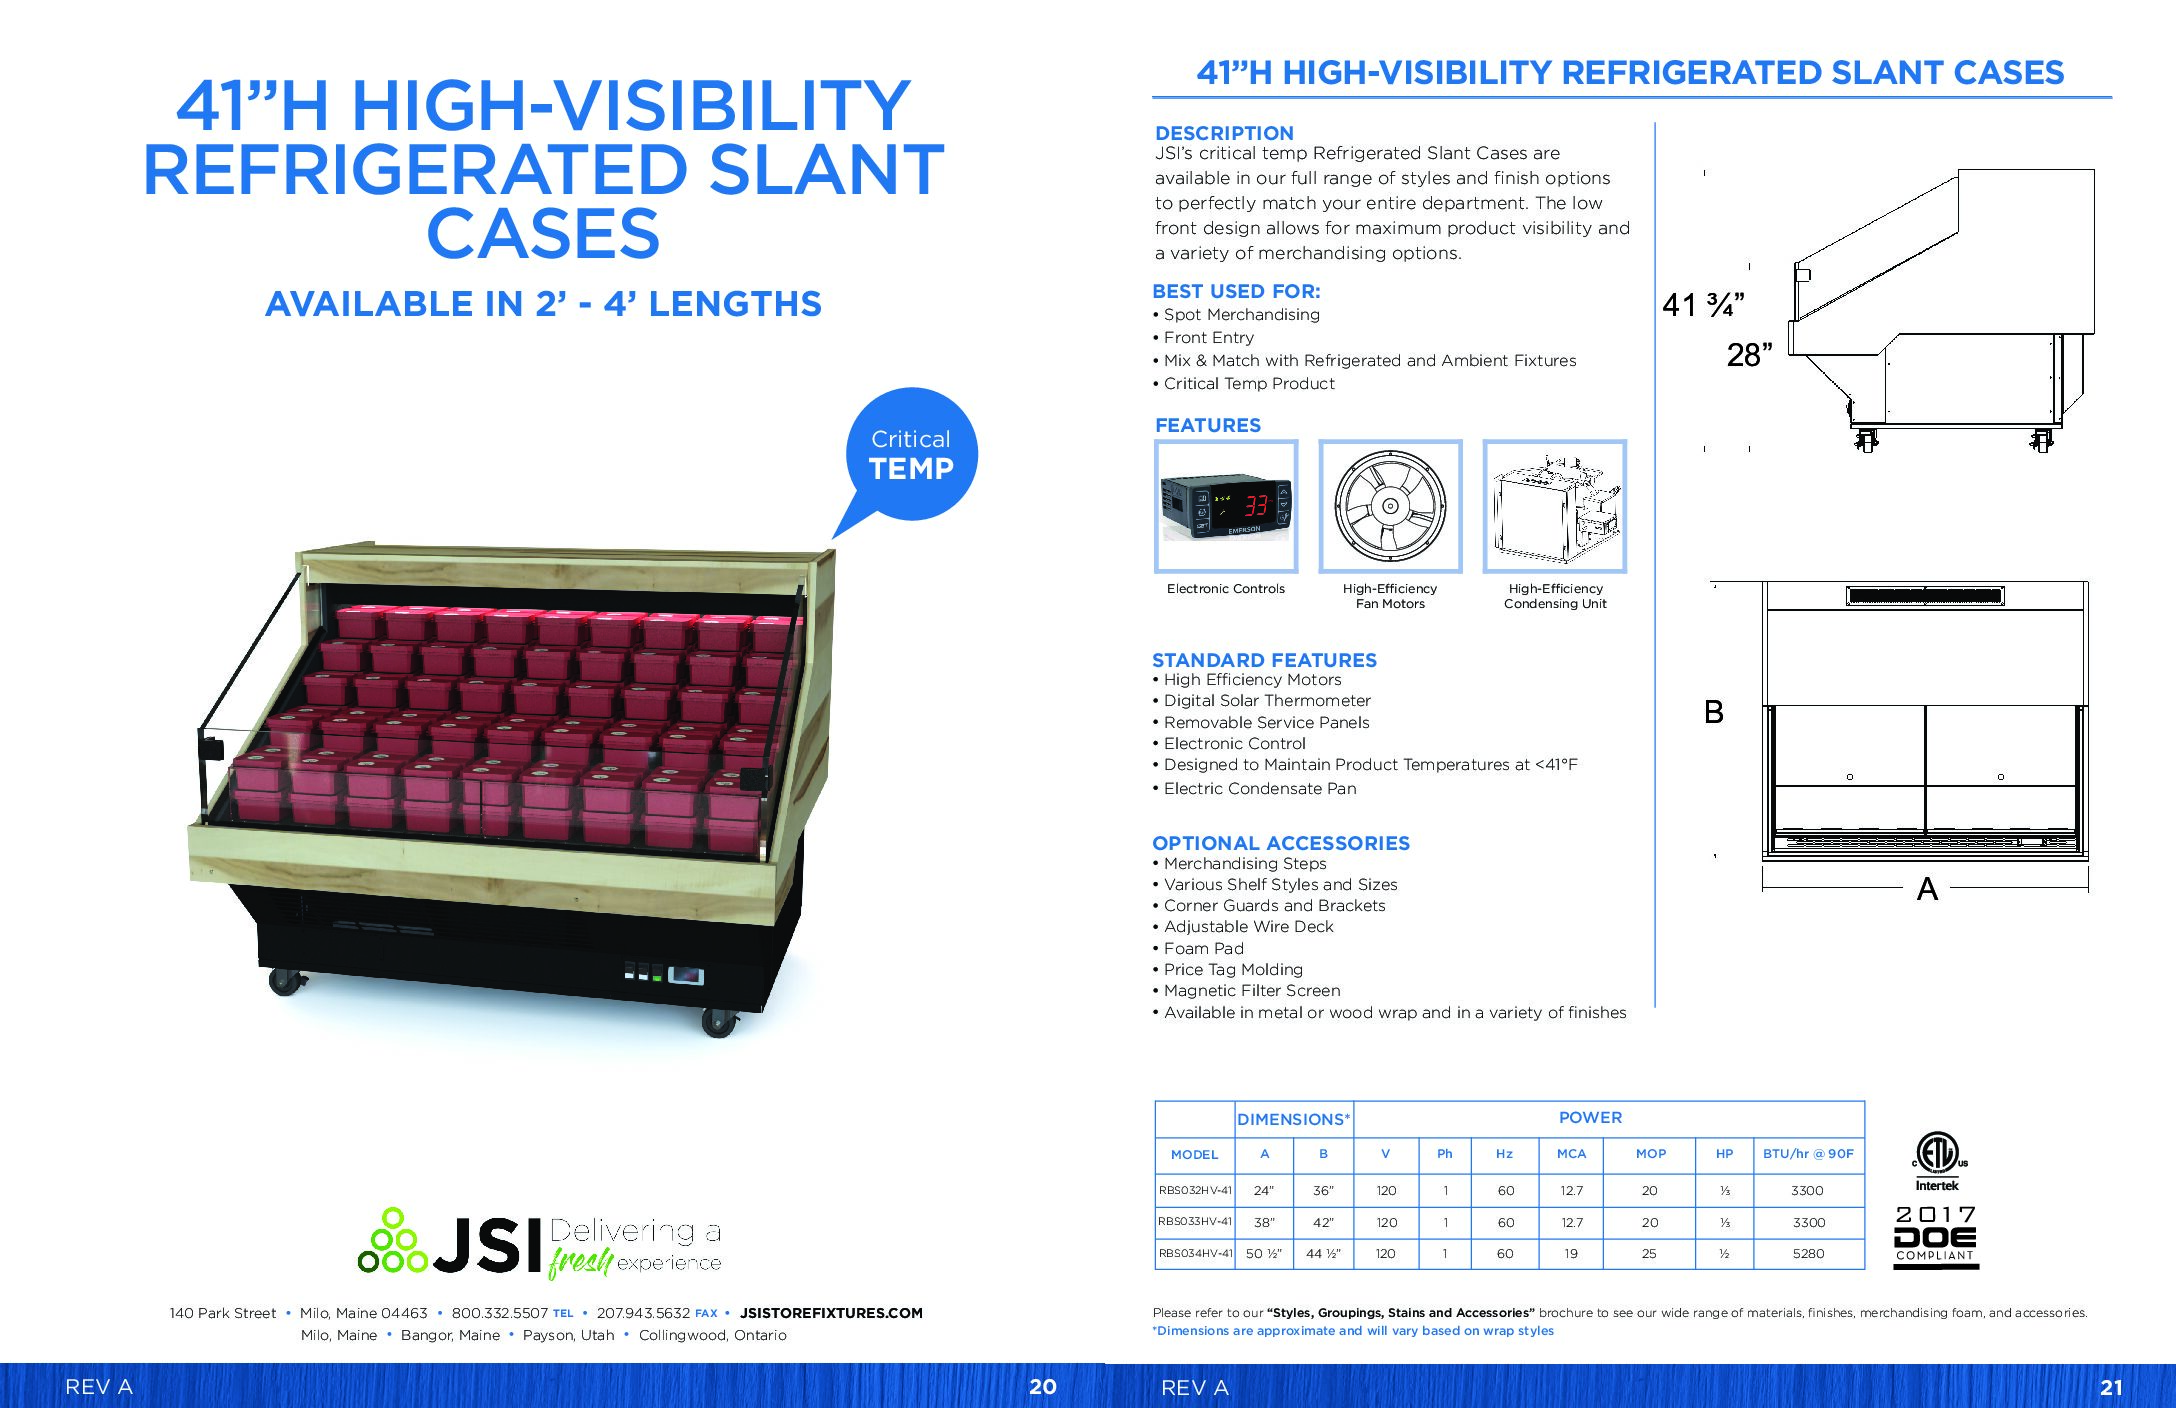 41in High-Visibility Refrigerated Slant Cases (2ft-4ft) (PDF)